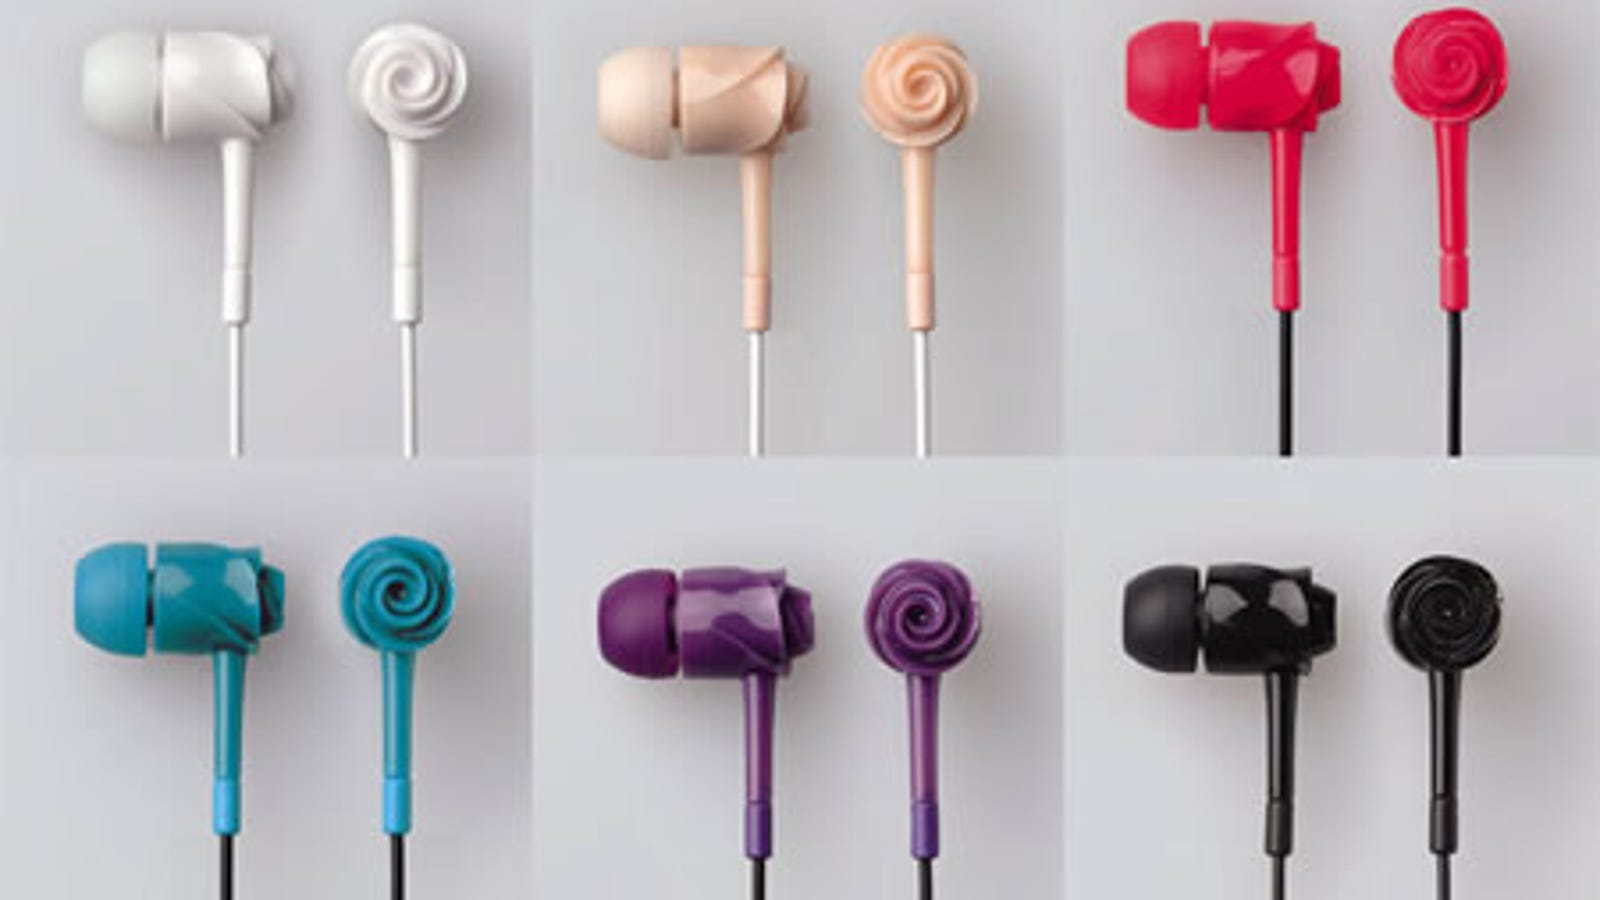 Elecom Rose EarDrops Phones: Rosebuds for Your Ears